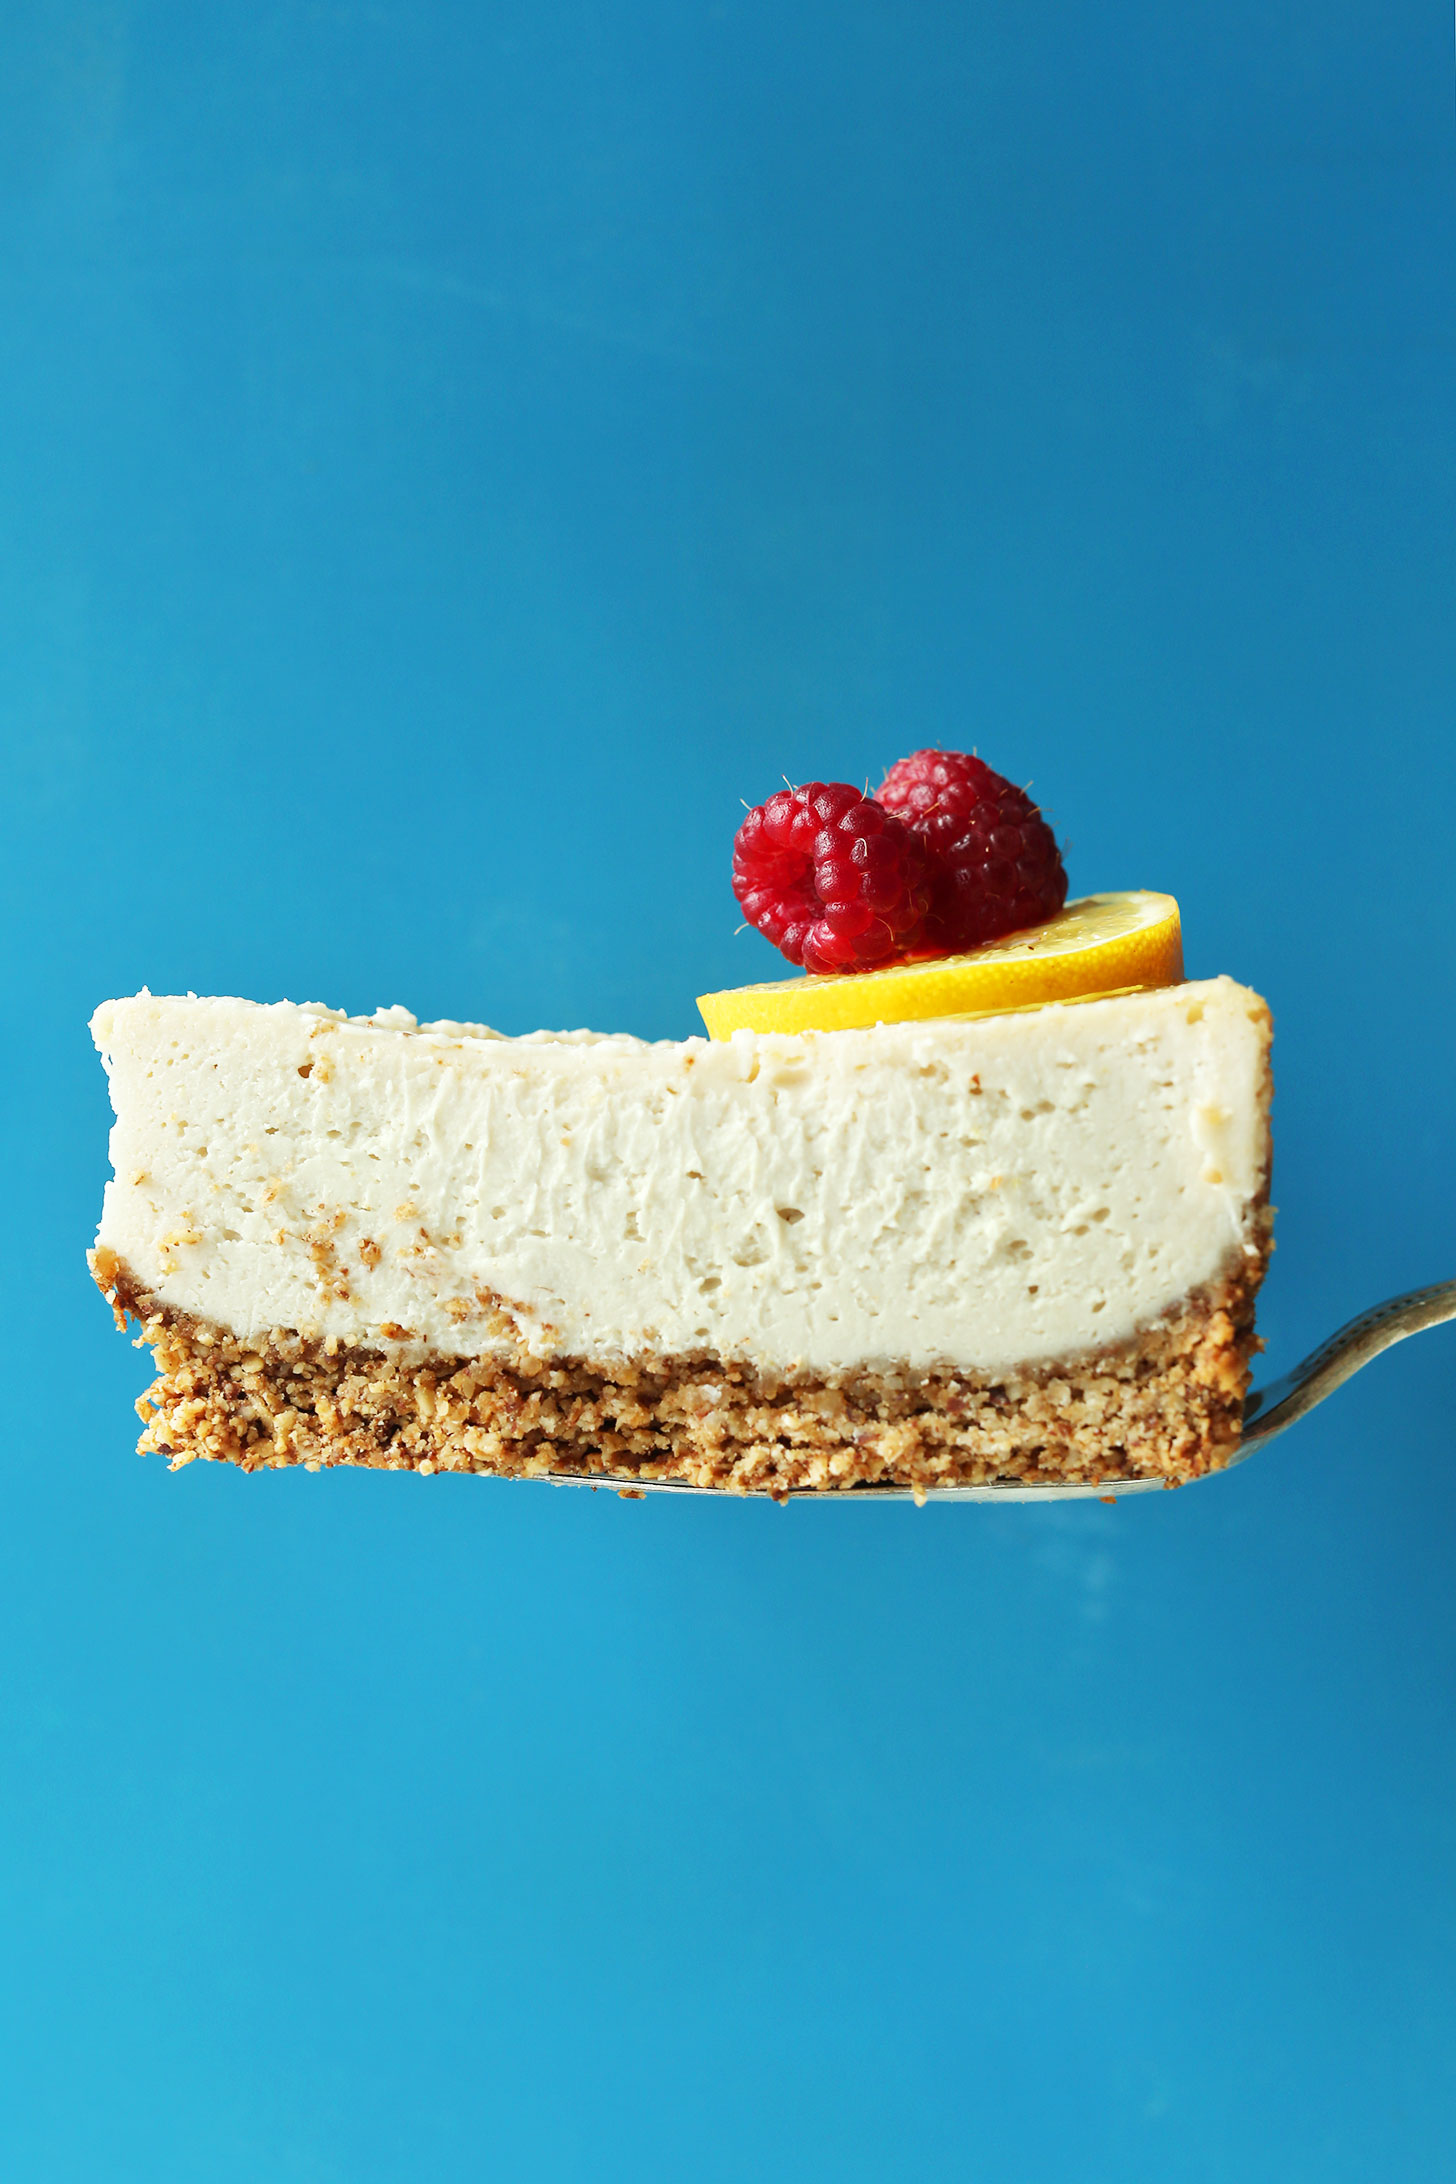 Slice of our Vegan Gluten-Free Cheesecake made in the blender